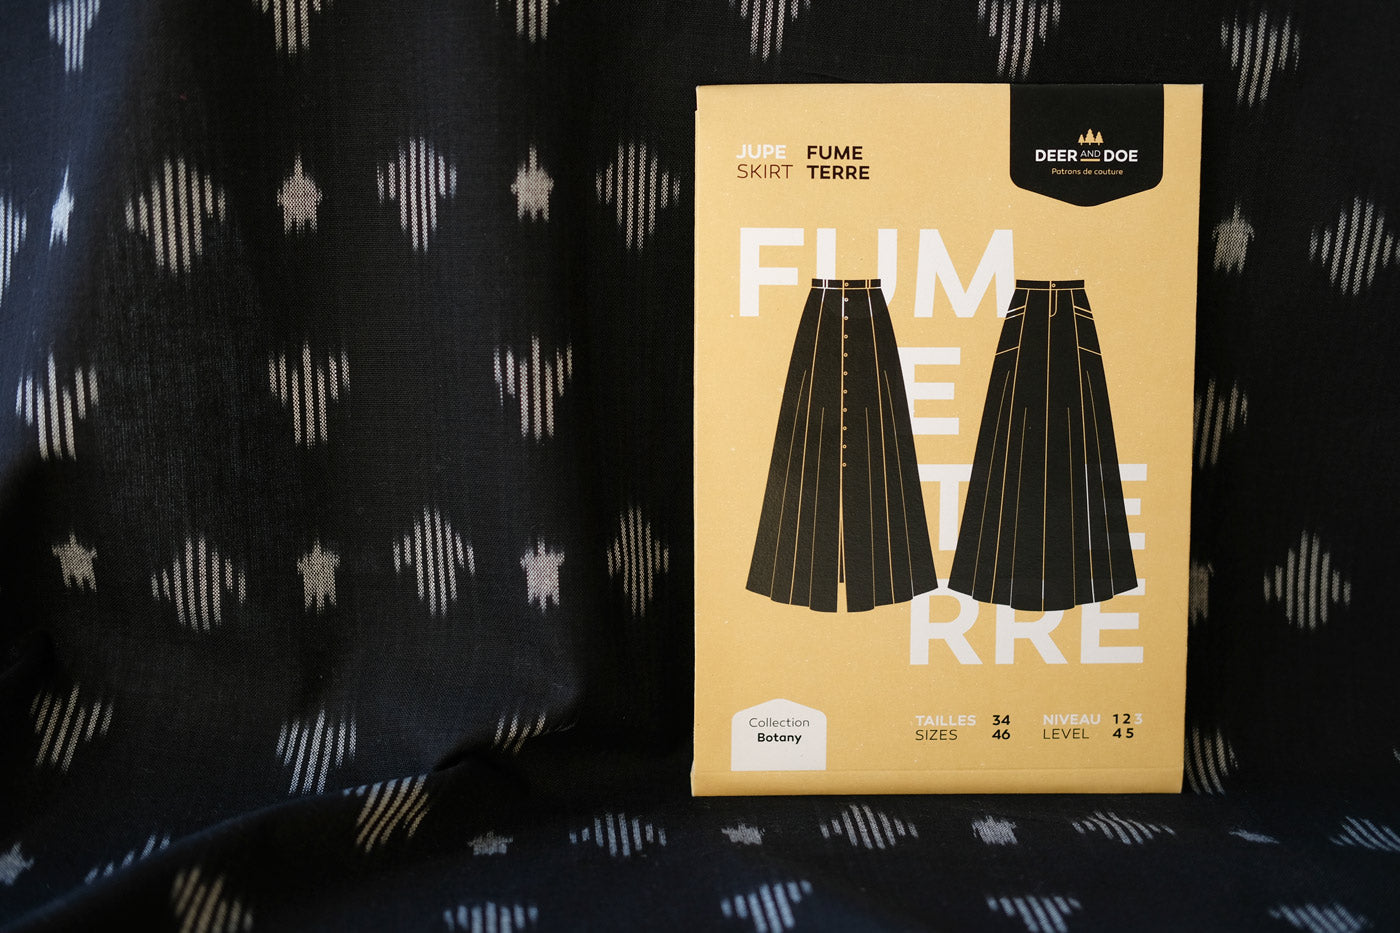 Deer and Doe Fumeterre skirt in Indian black ikat